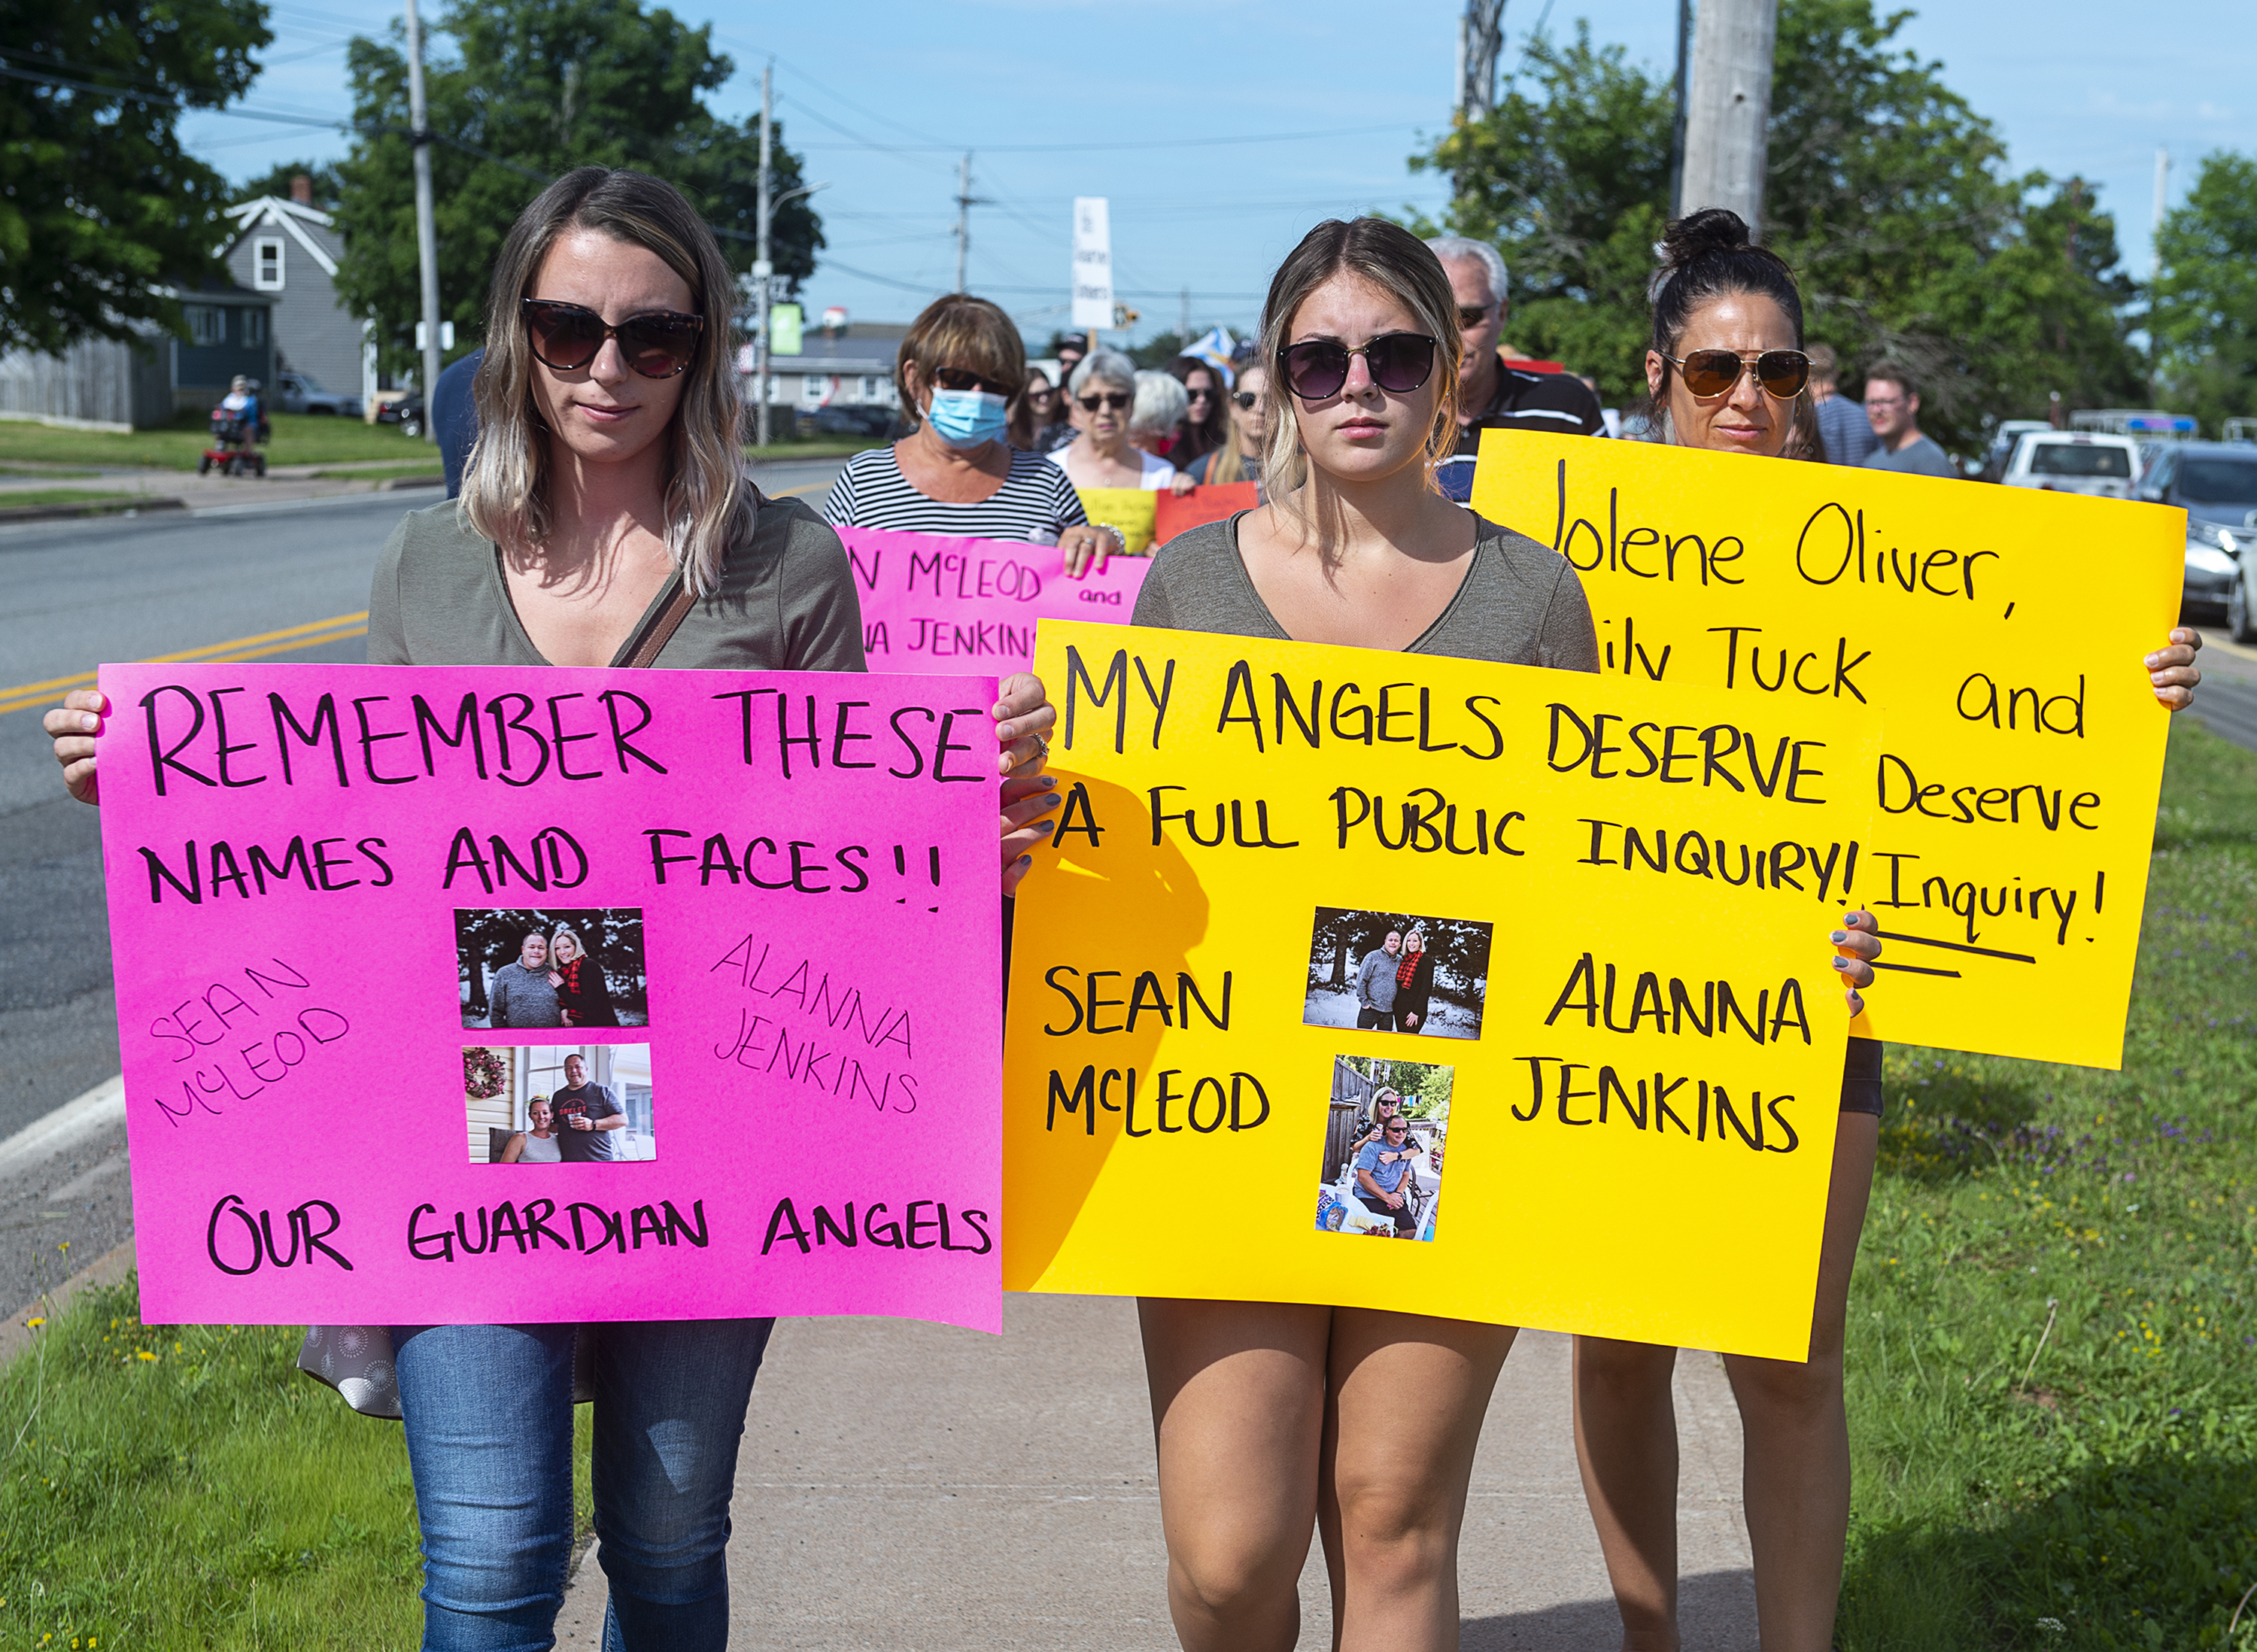 Family and friends of victims, including Sean McLeod's daughters, Taylor Andrews, left, and Amielia McLeod, attend a march demanding an inquiry into the April mass shooting in Nova Scotia that killed 22 people, in Bible Hill, N.S., on July 22, 2020. (Andrew Vaughan/The Canadian Press)